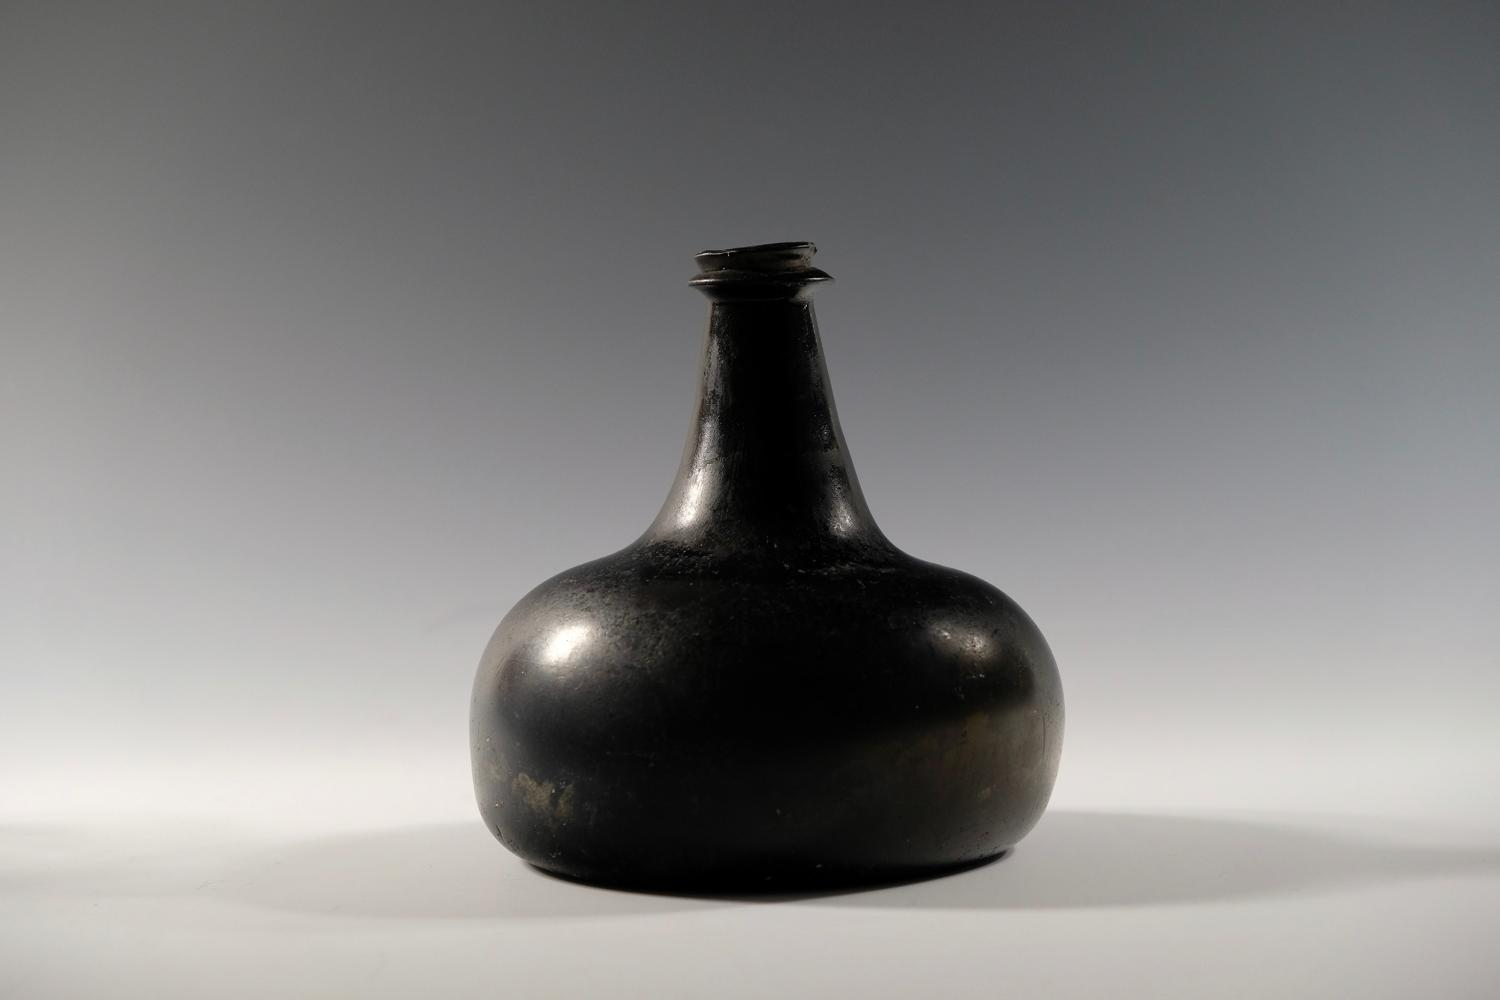 Onion wine bottle English C1700-10.